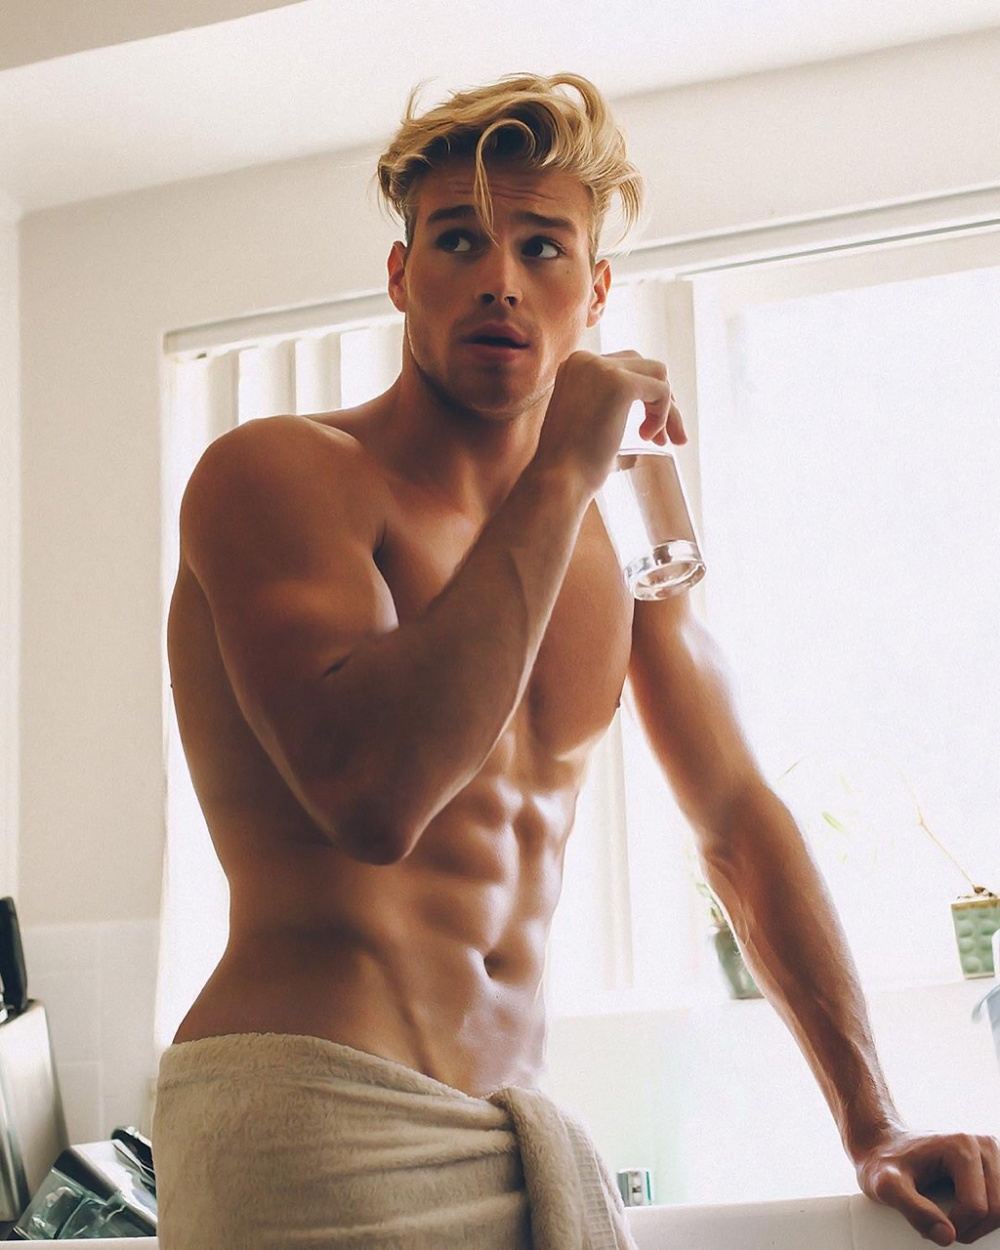 matthew-noszka-by-christian-oita-2